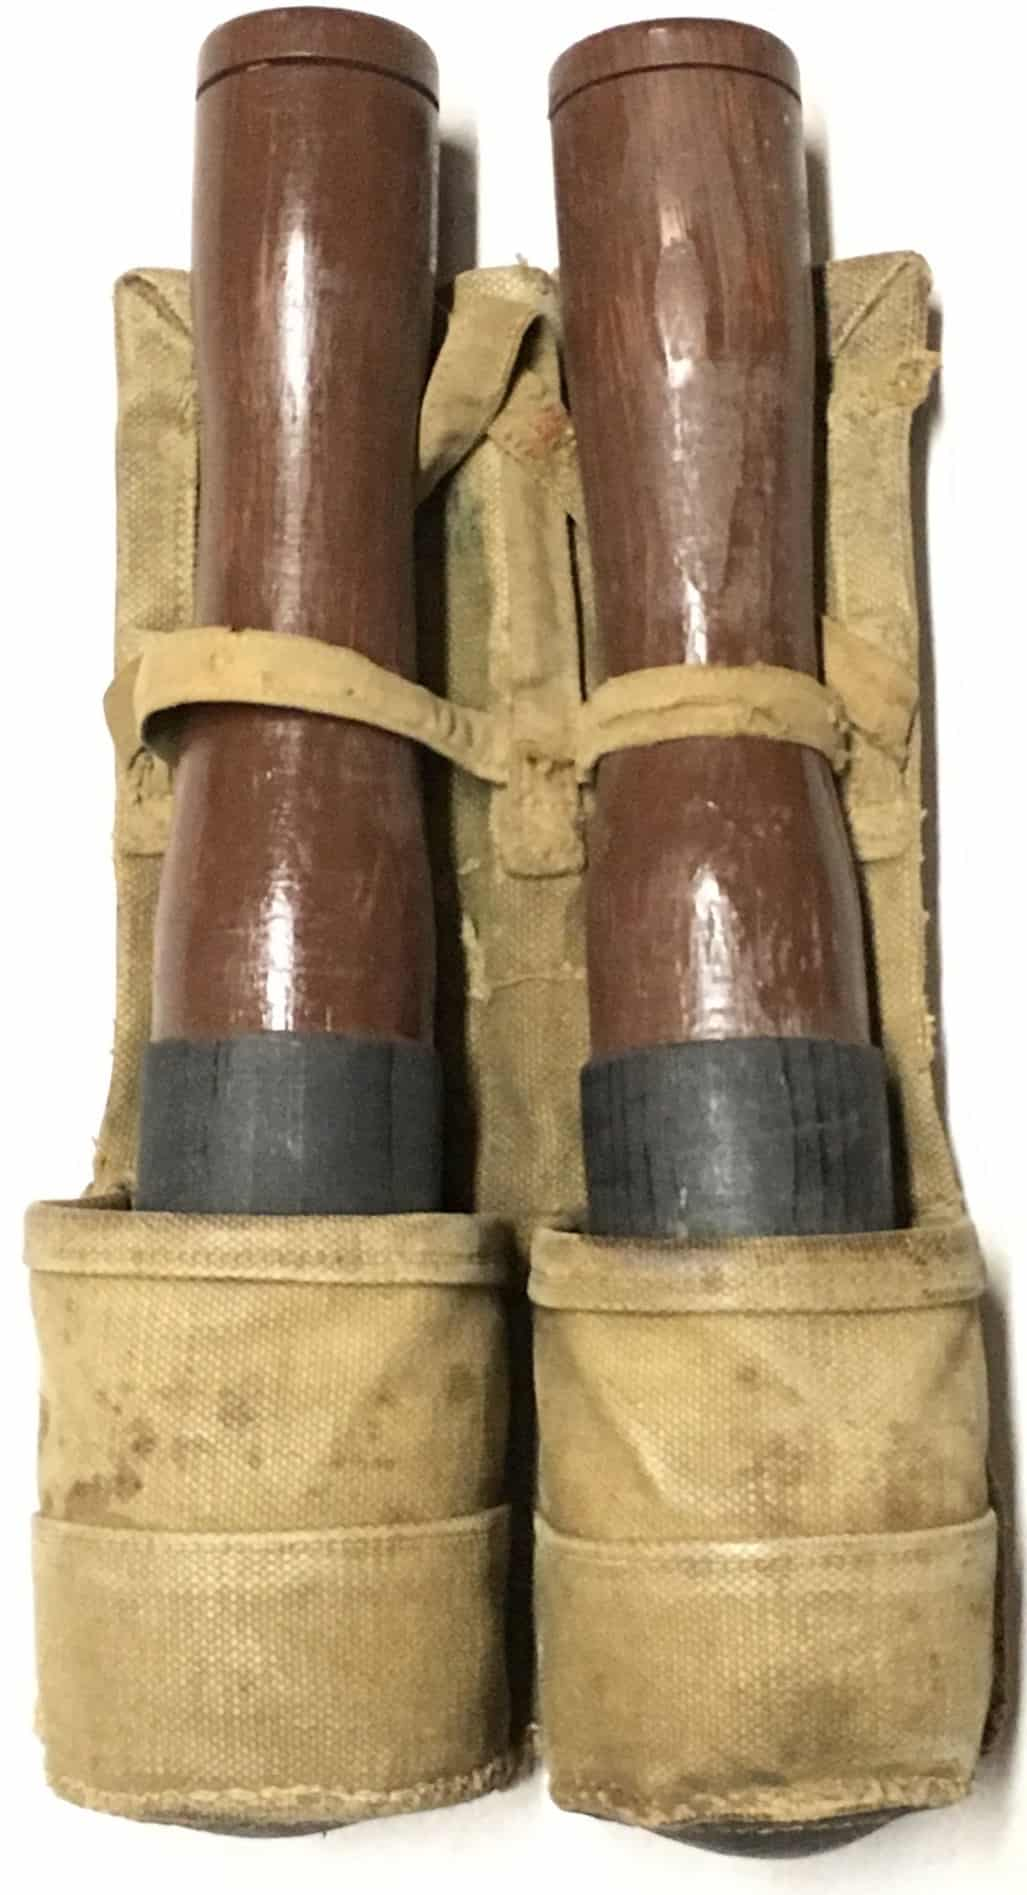 North Vietnamese Army Two Cell Long Stick Grenade Pouch with Grenades